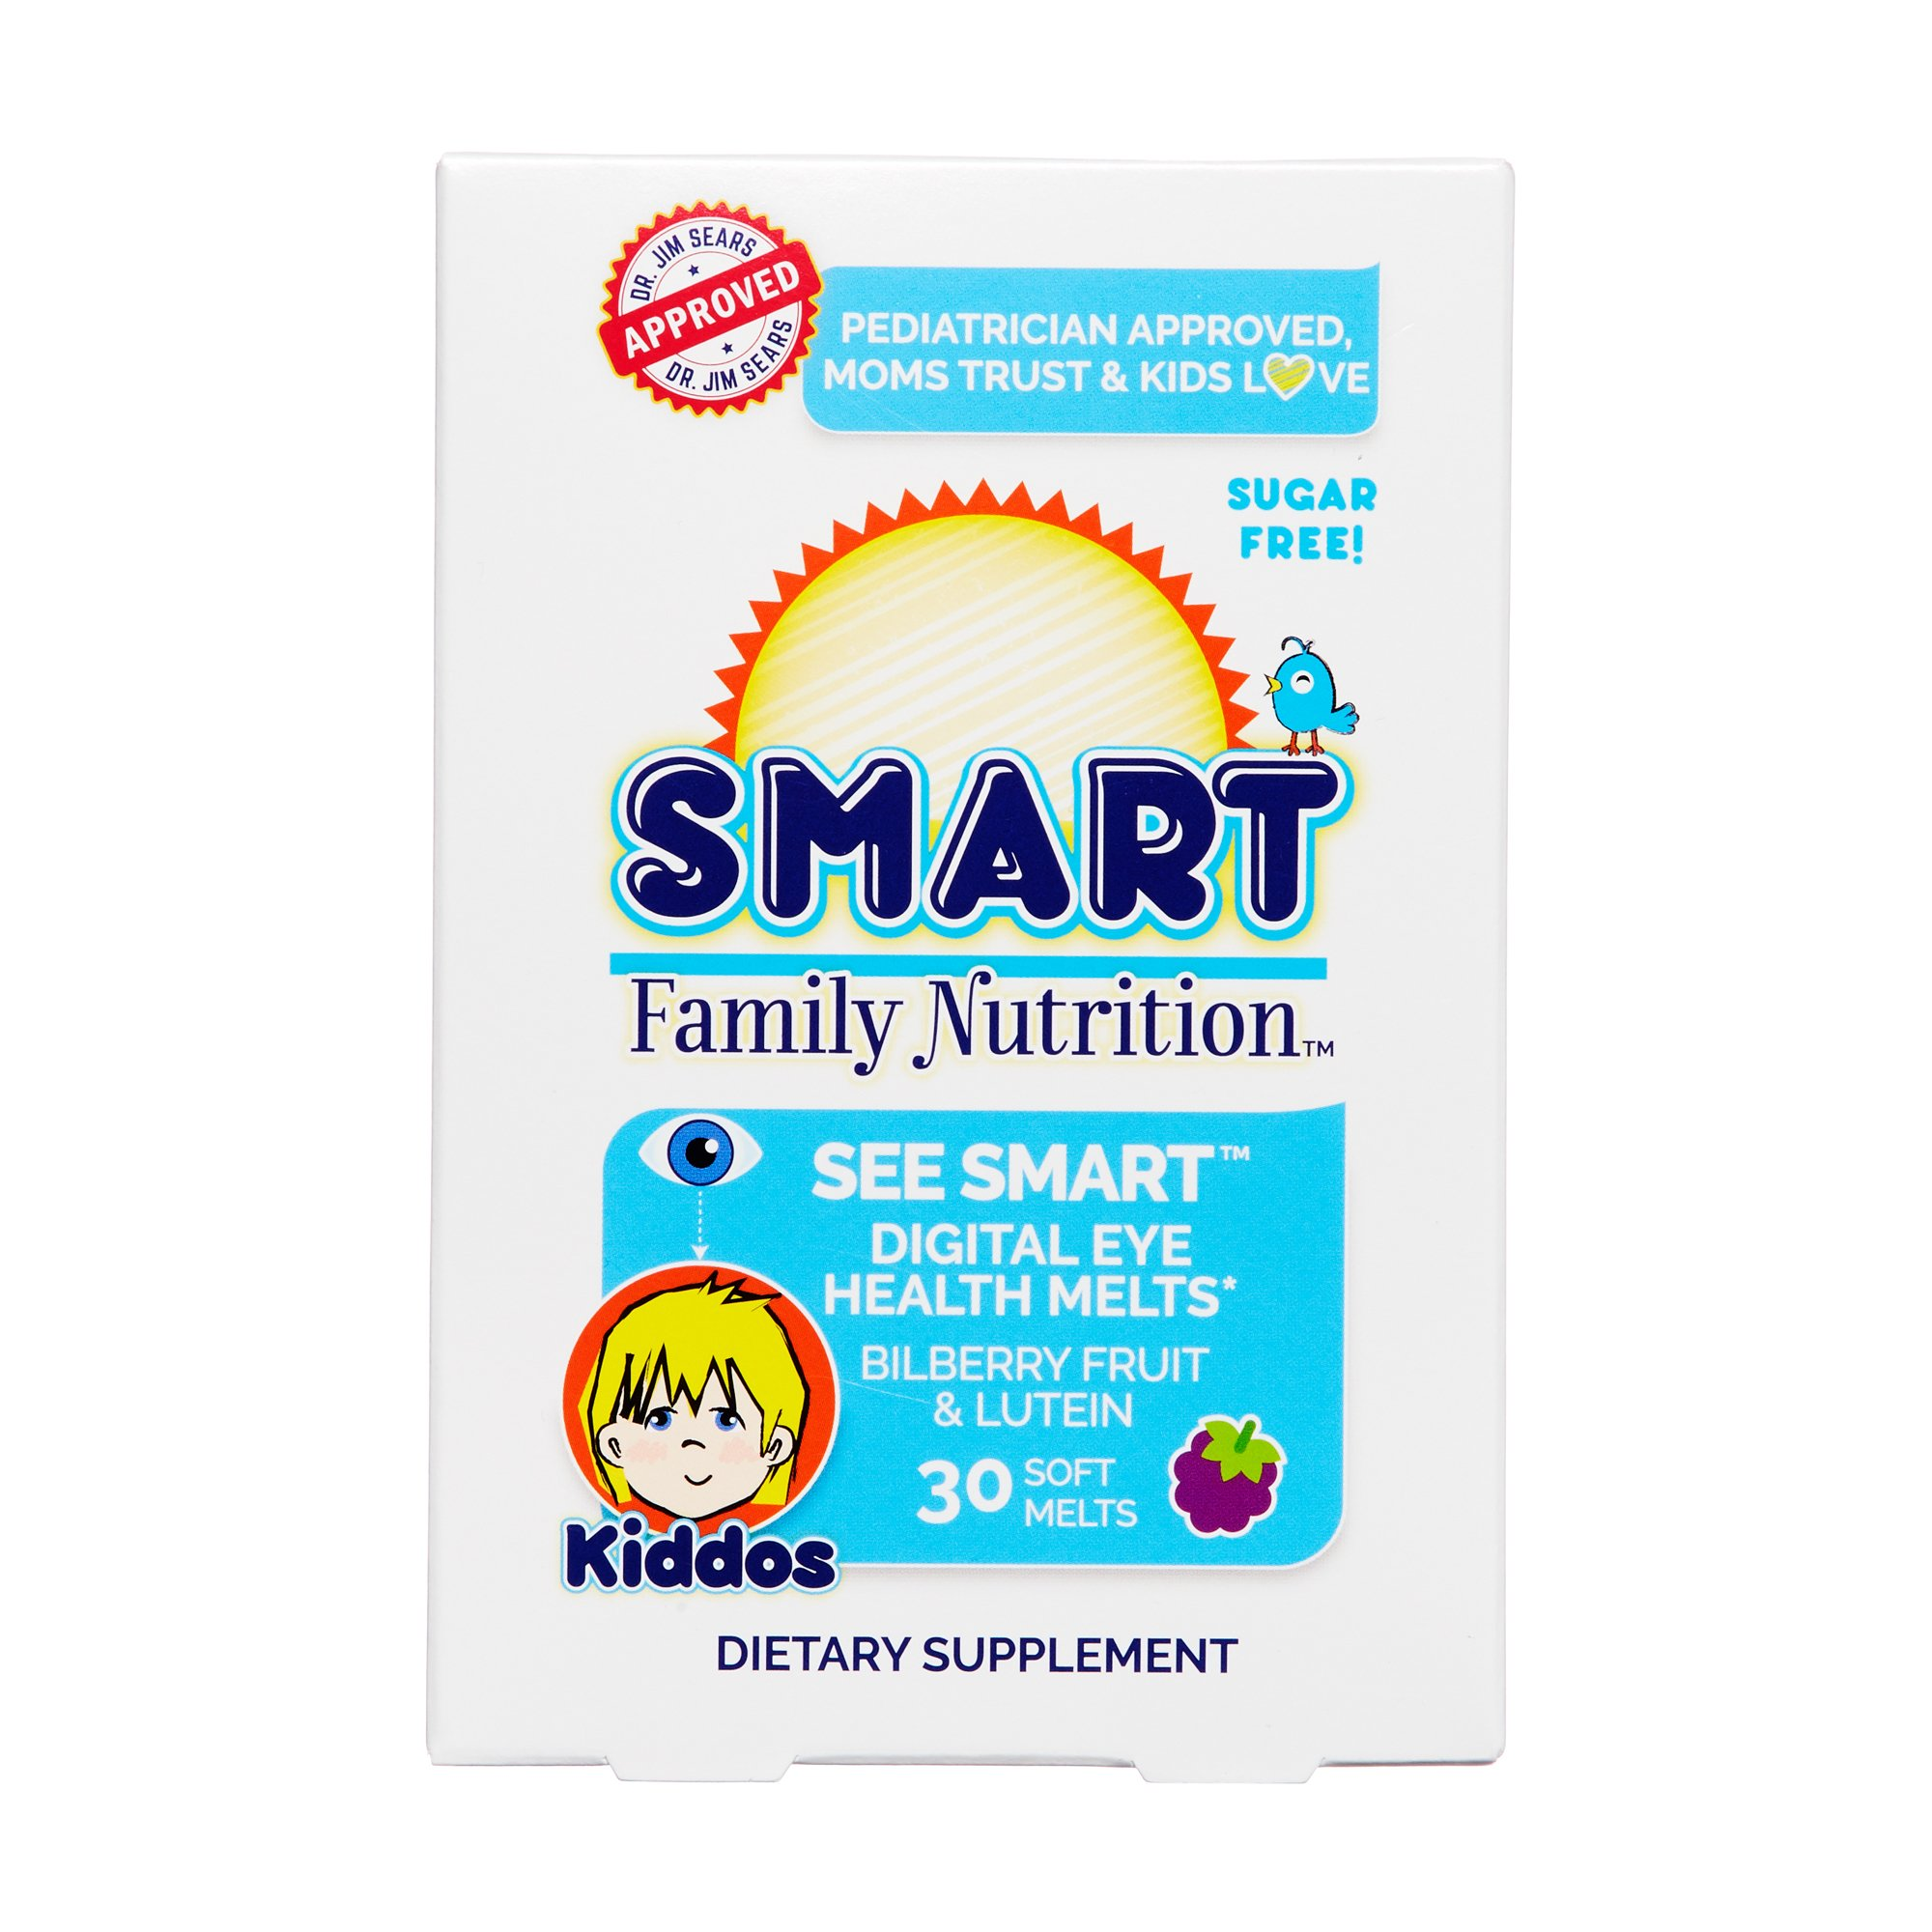 Smart Family Nutrition - See Smart Digital Eye Health, Supports Clear Vision and Eye Health with Bilberry Fruit and Lutein, Sugar Free, Gluten Free, Non-GMO, 2 Years and Older, 30 Soft Melts